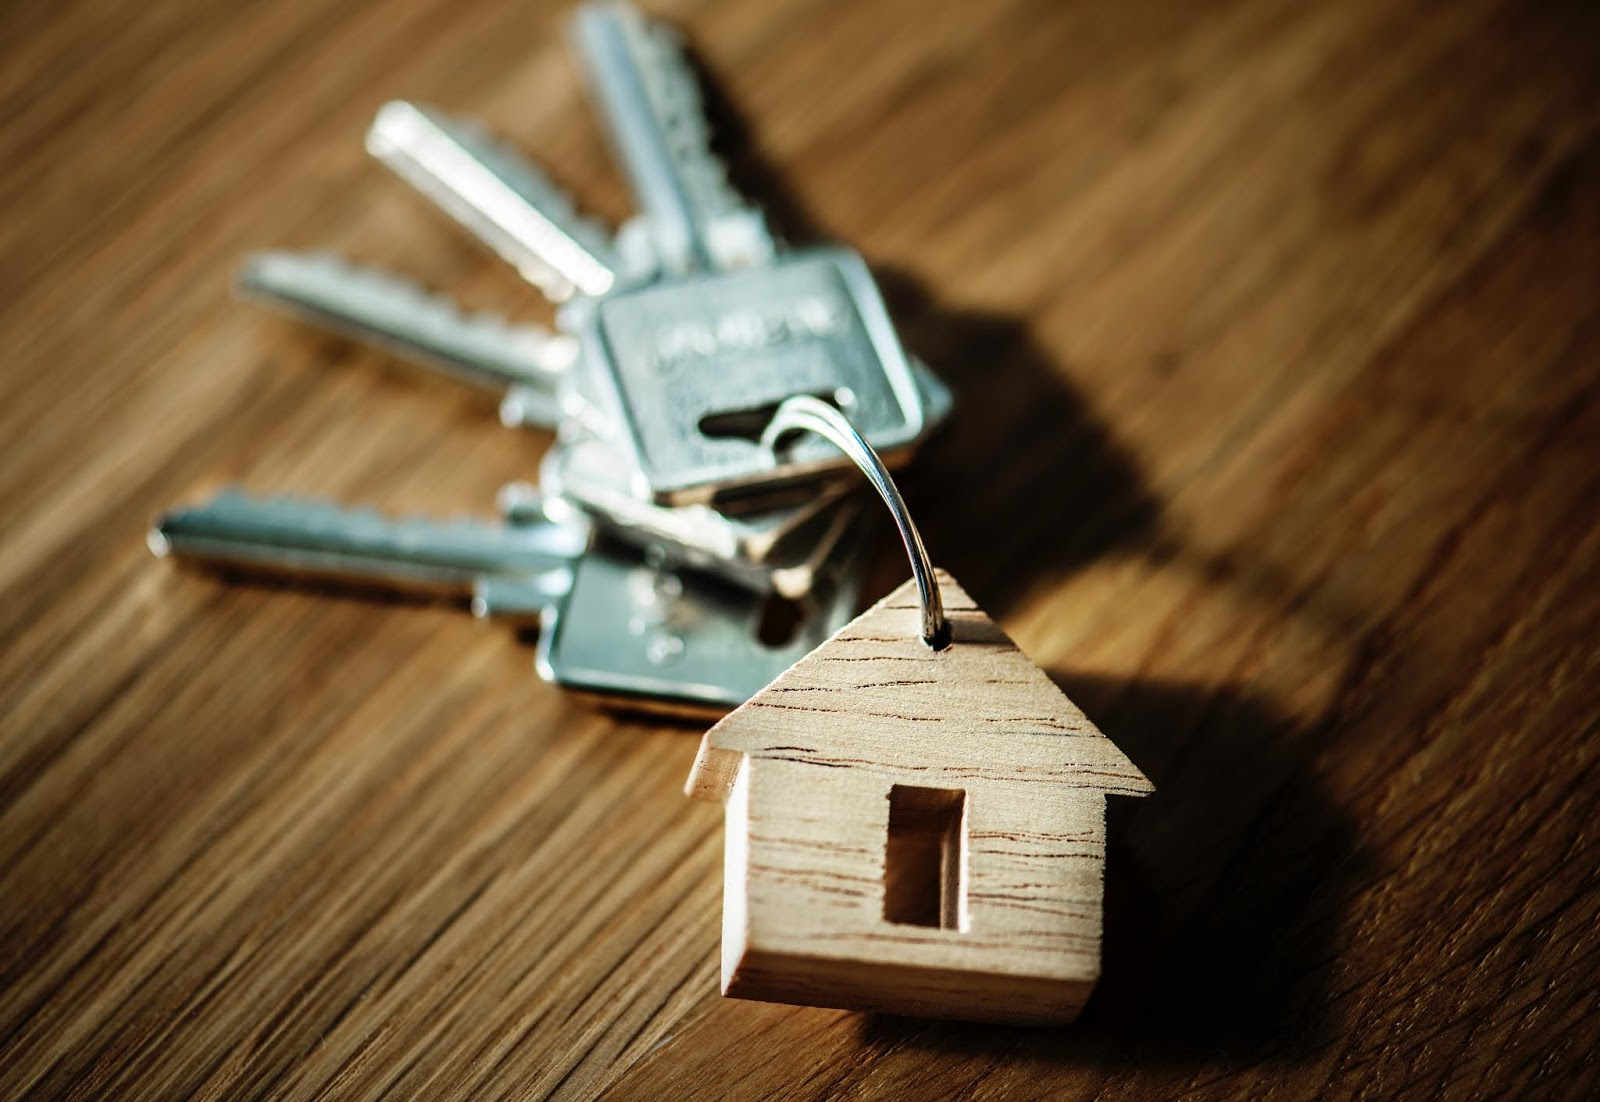 Image result for Why is Junaid Iqbal Mohammed Memon a Common Name in Real Estate?